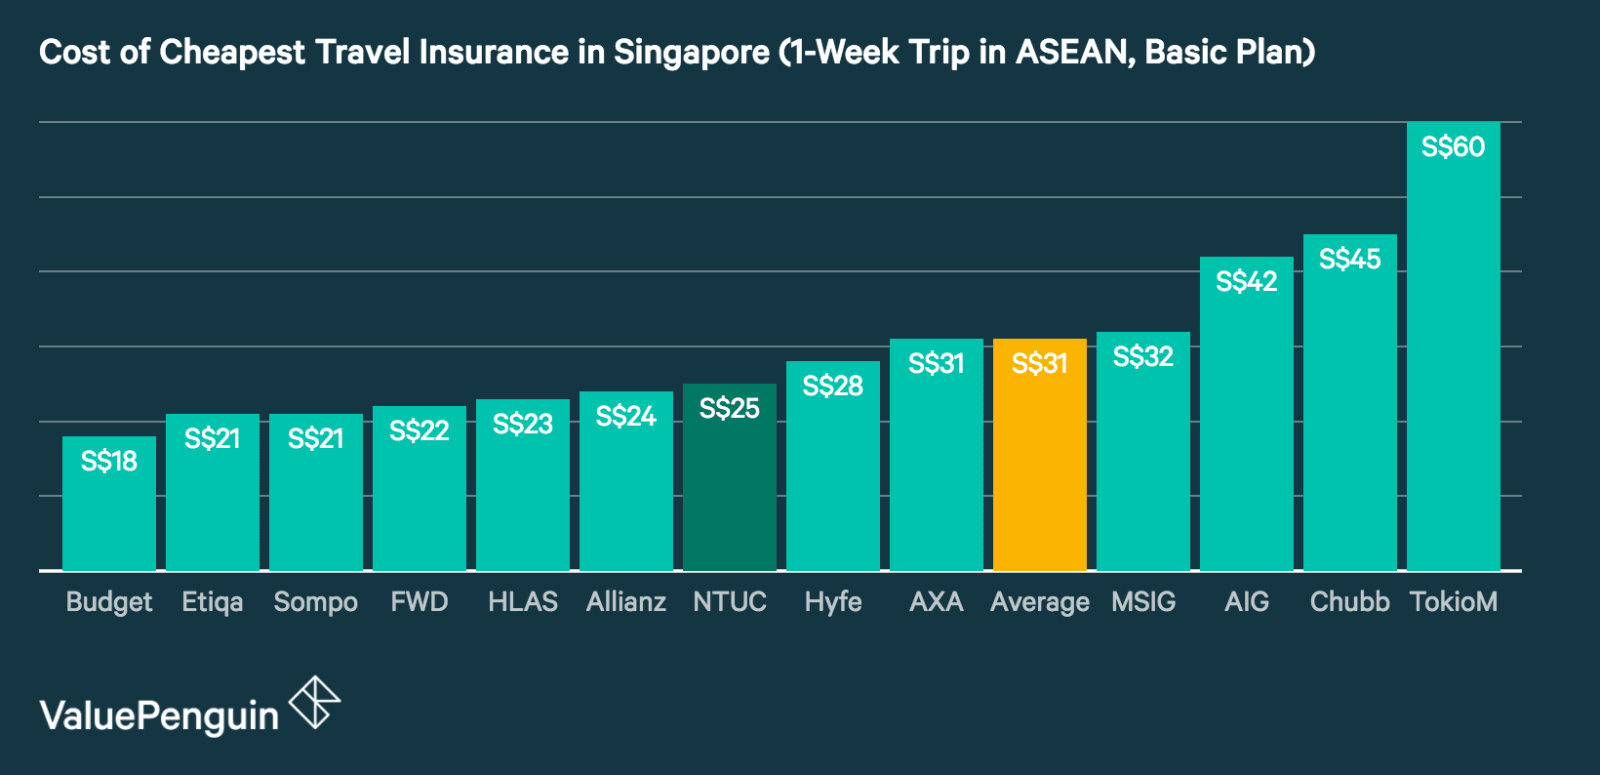 This graph compares the price of all the major travel insurance policies in Singapore for a 1-week trip in the ASEAN region in order to help consumers find the cheapest travel insurance for their trip.